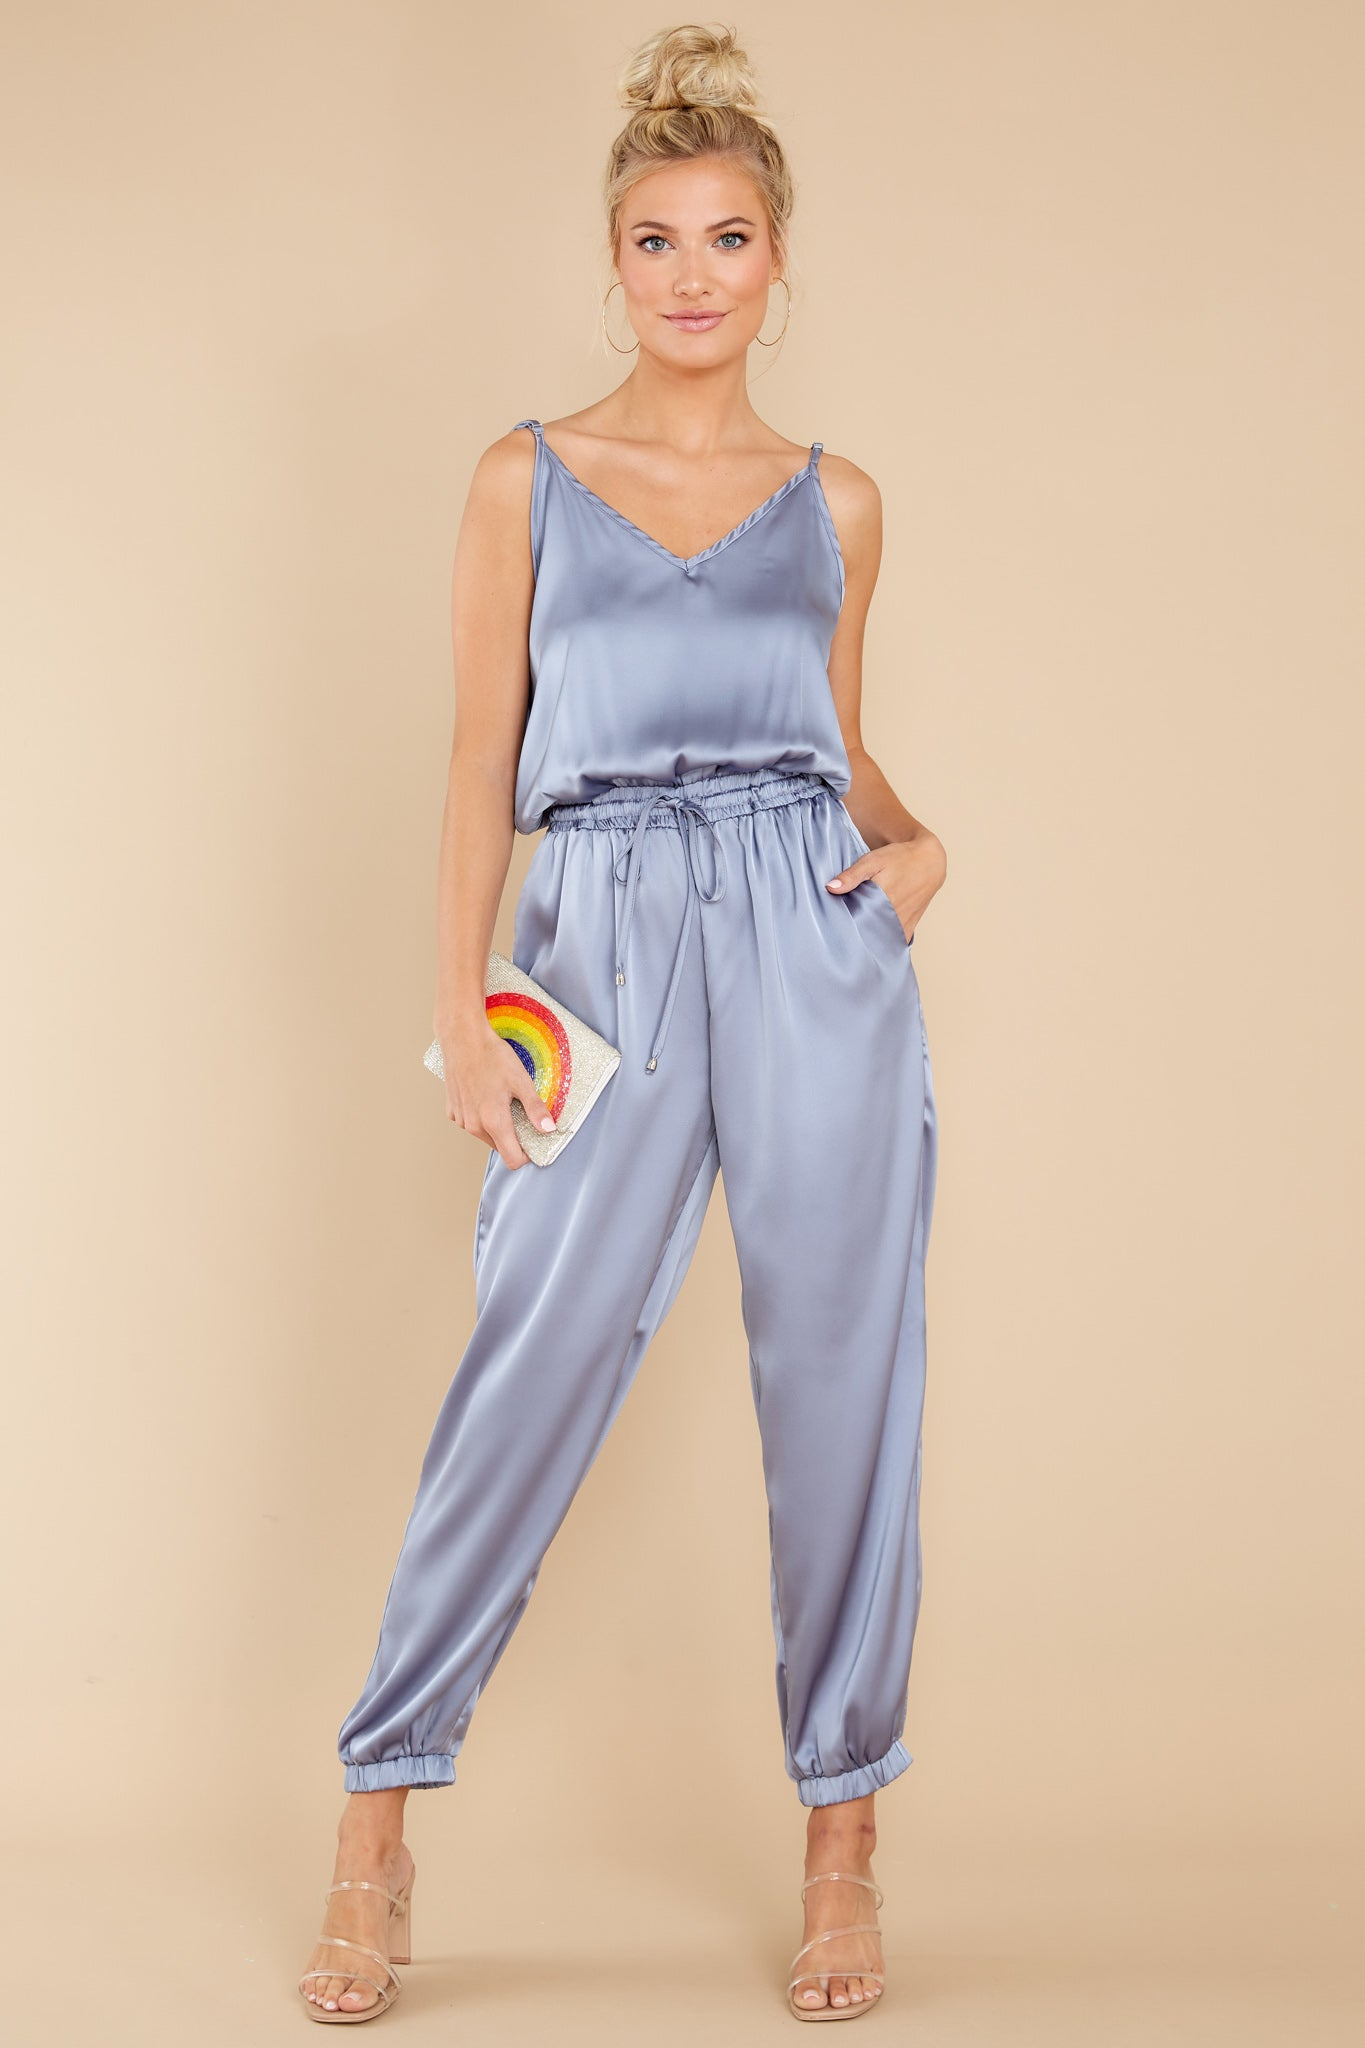 70s Disco Fashion: Disco Clothes, Outfits for Girls Seeking Serenity Blue Iris Jumpsuit $52.00 AT vintagedancer.com